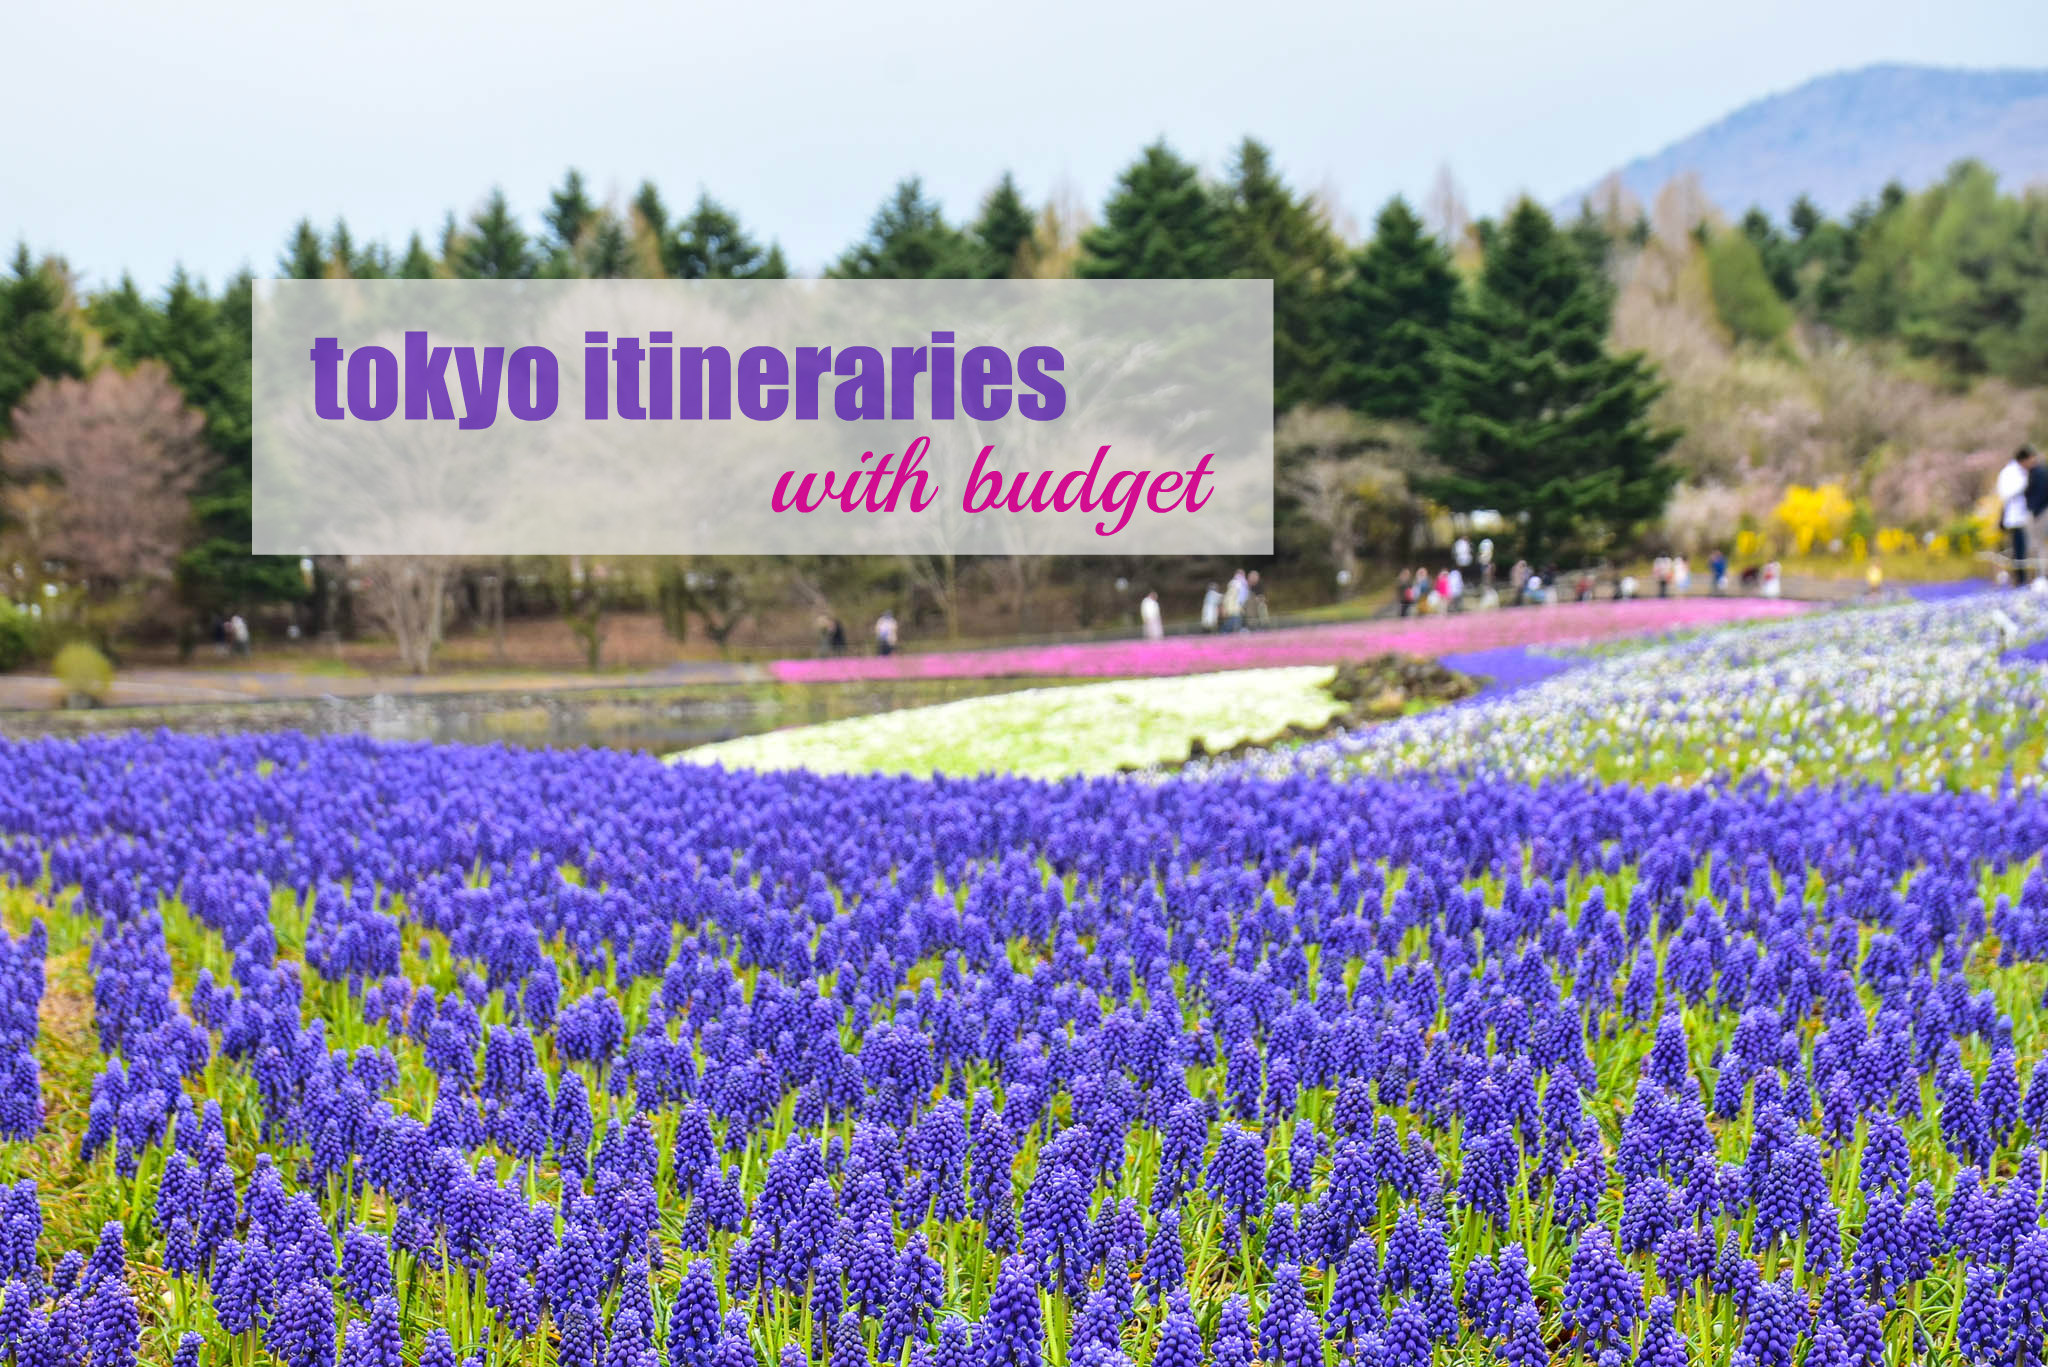 TOKYO ITINERARIES (with Budget)